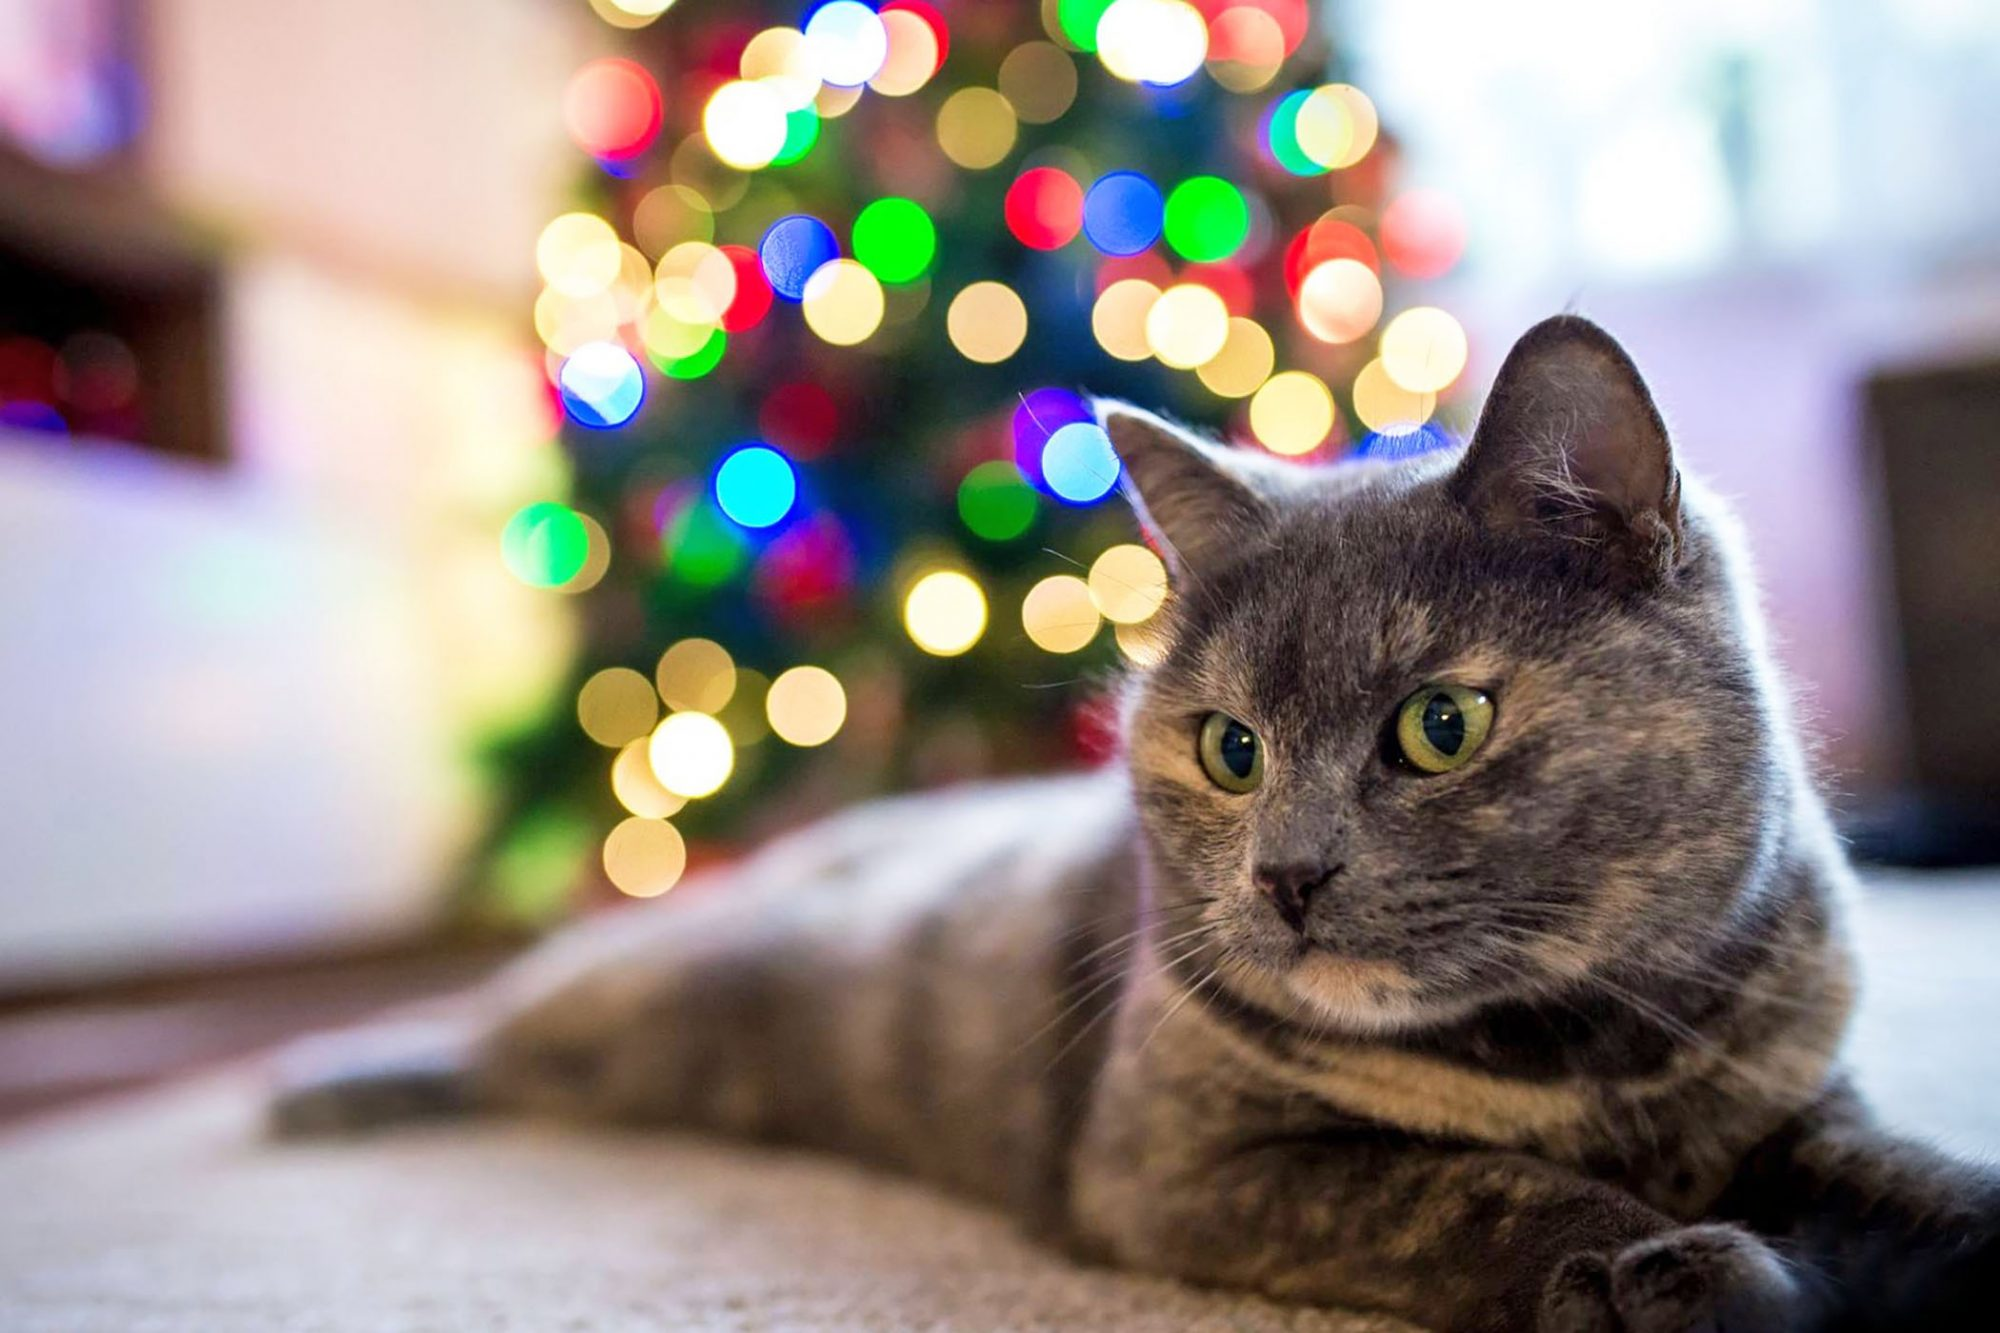 cat in front of Christmas tree